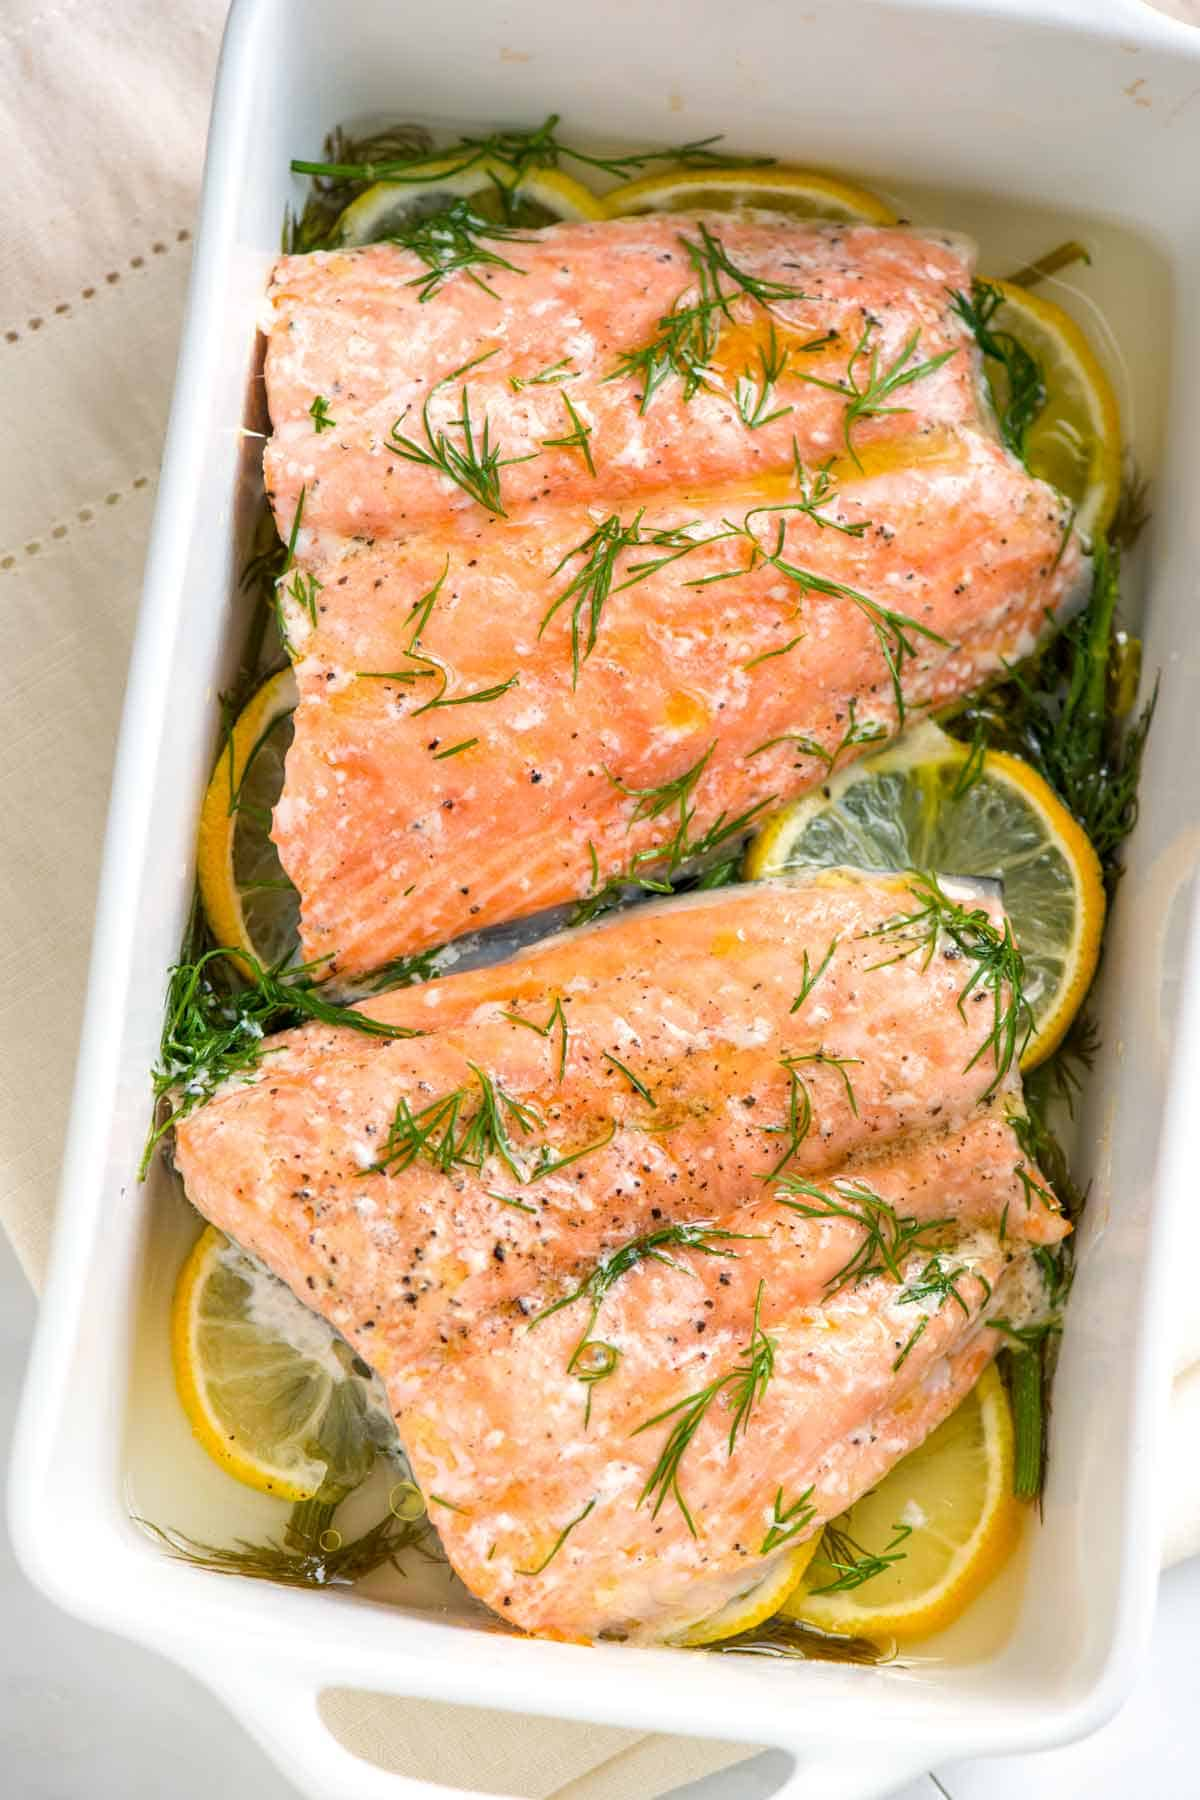 The trick to perfectly cooked salmon is to gently bake the fish in a little liquid. You could call it oven poached salmon.